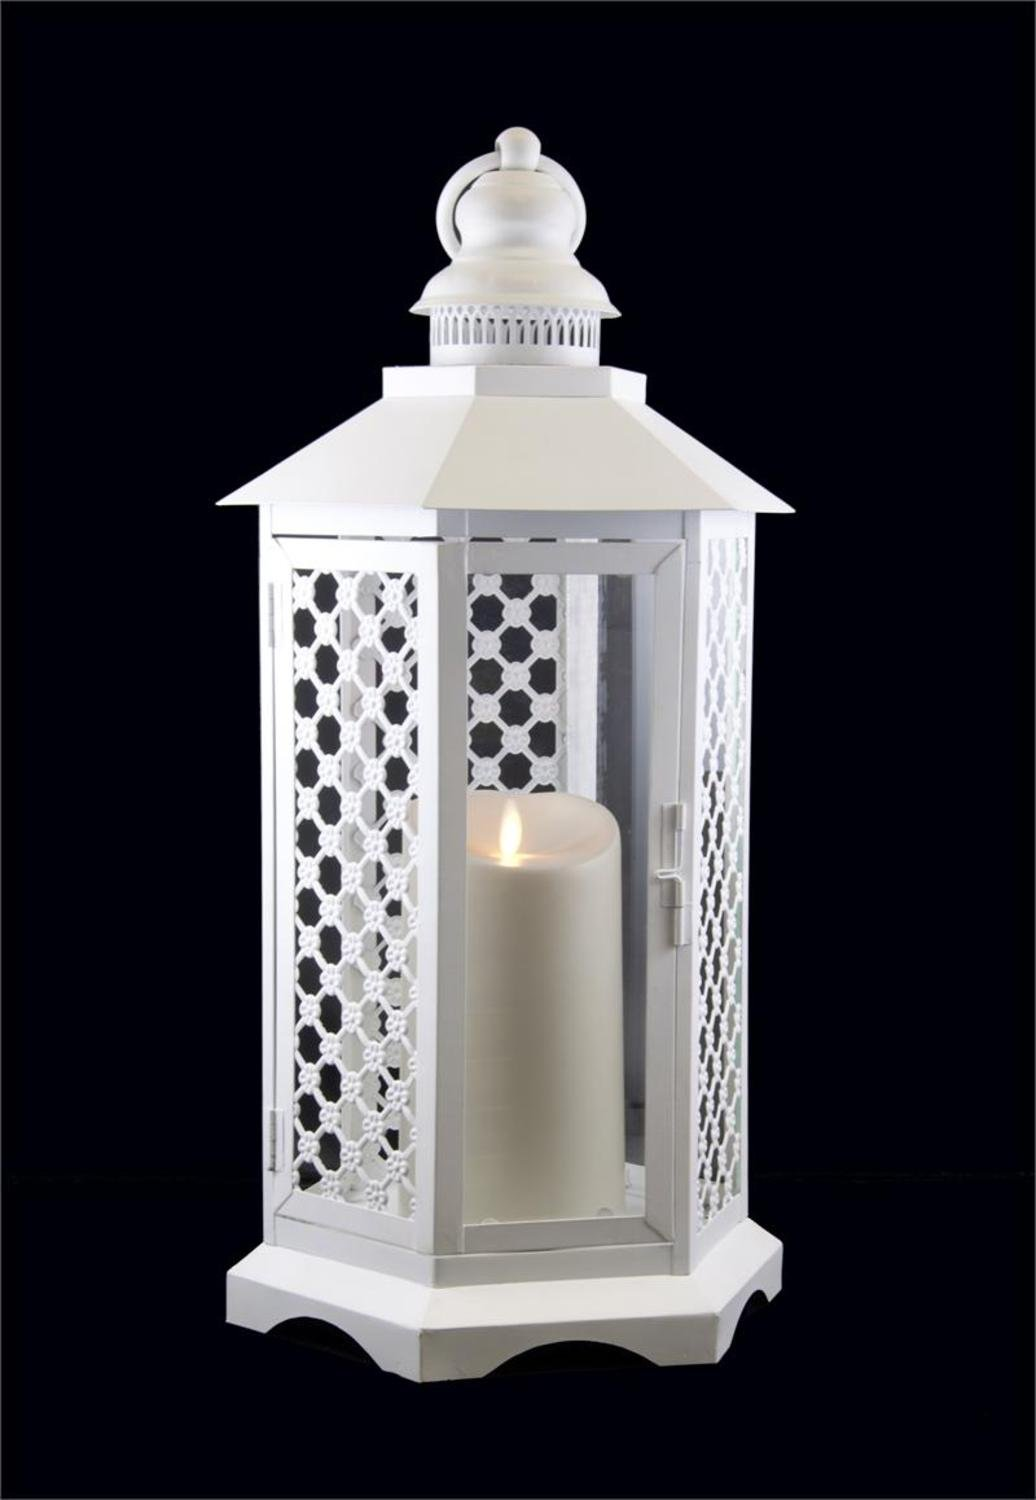 Floral Lattice Lantern with Luminara Flameless LED Lighted Candle